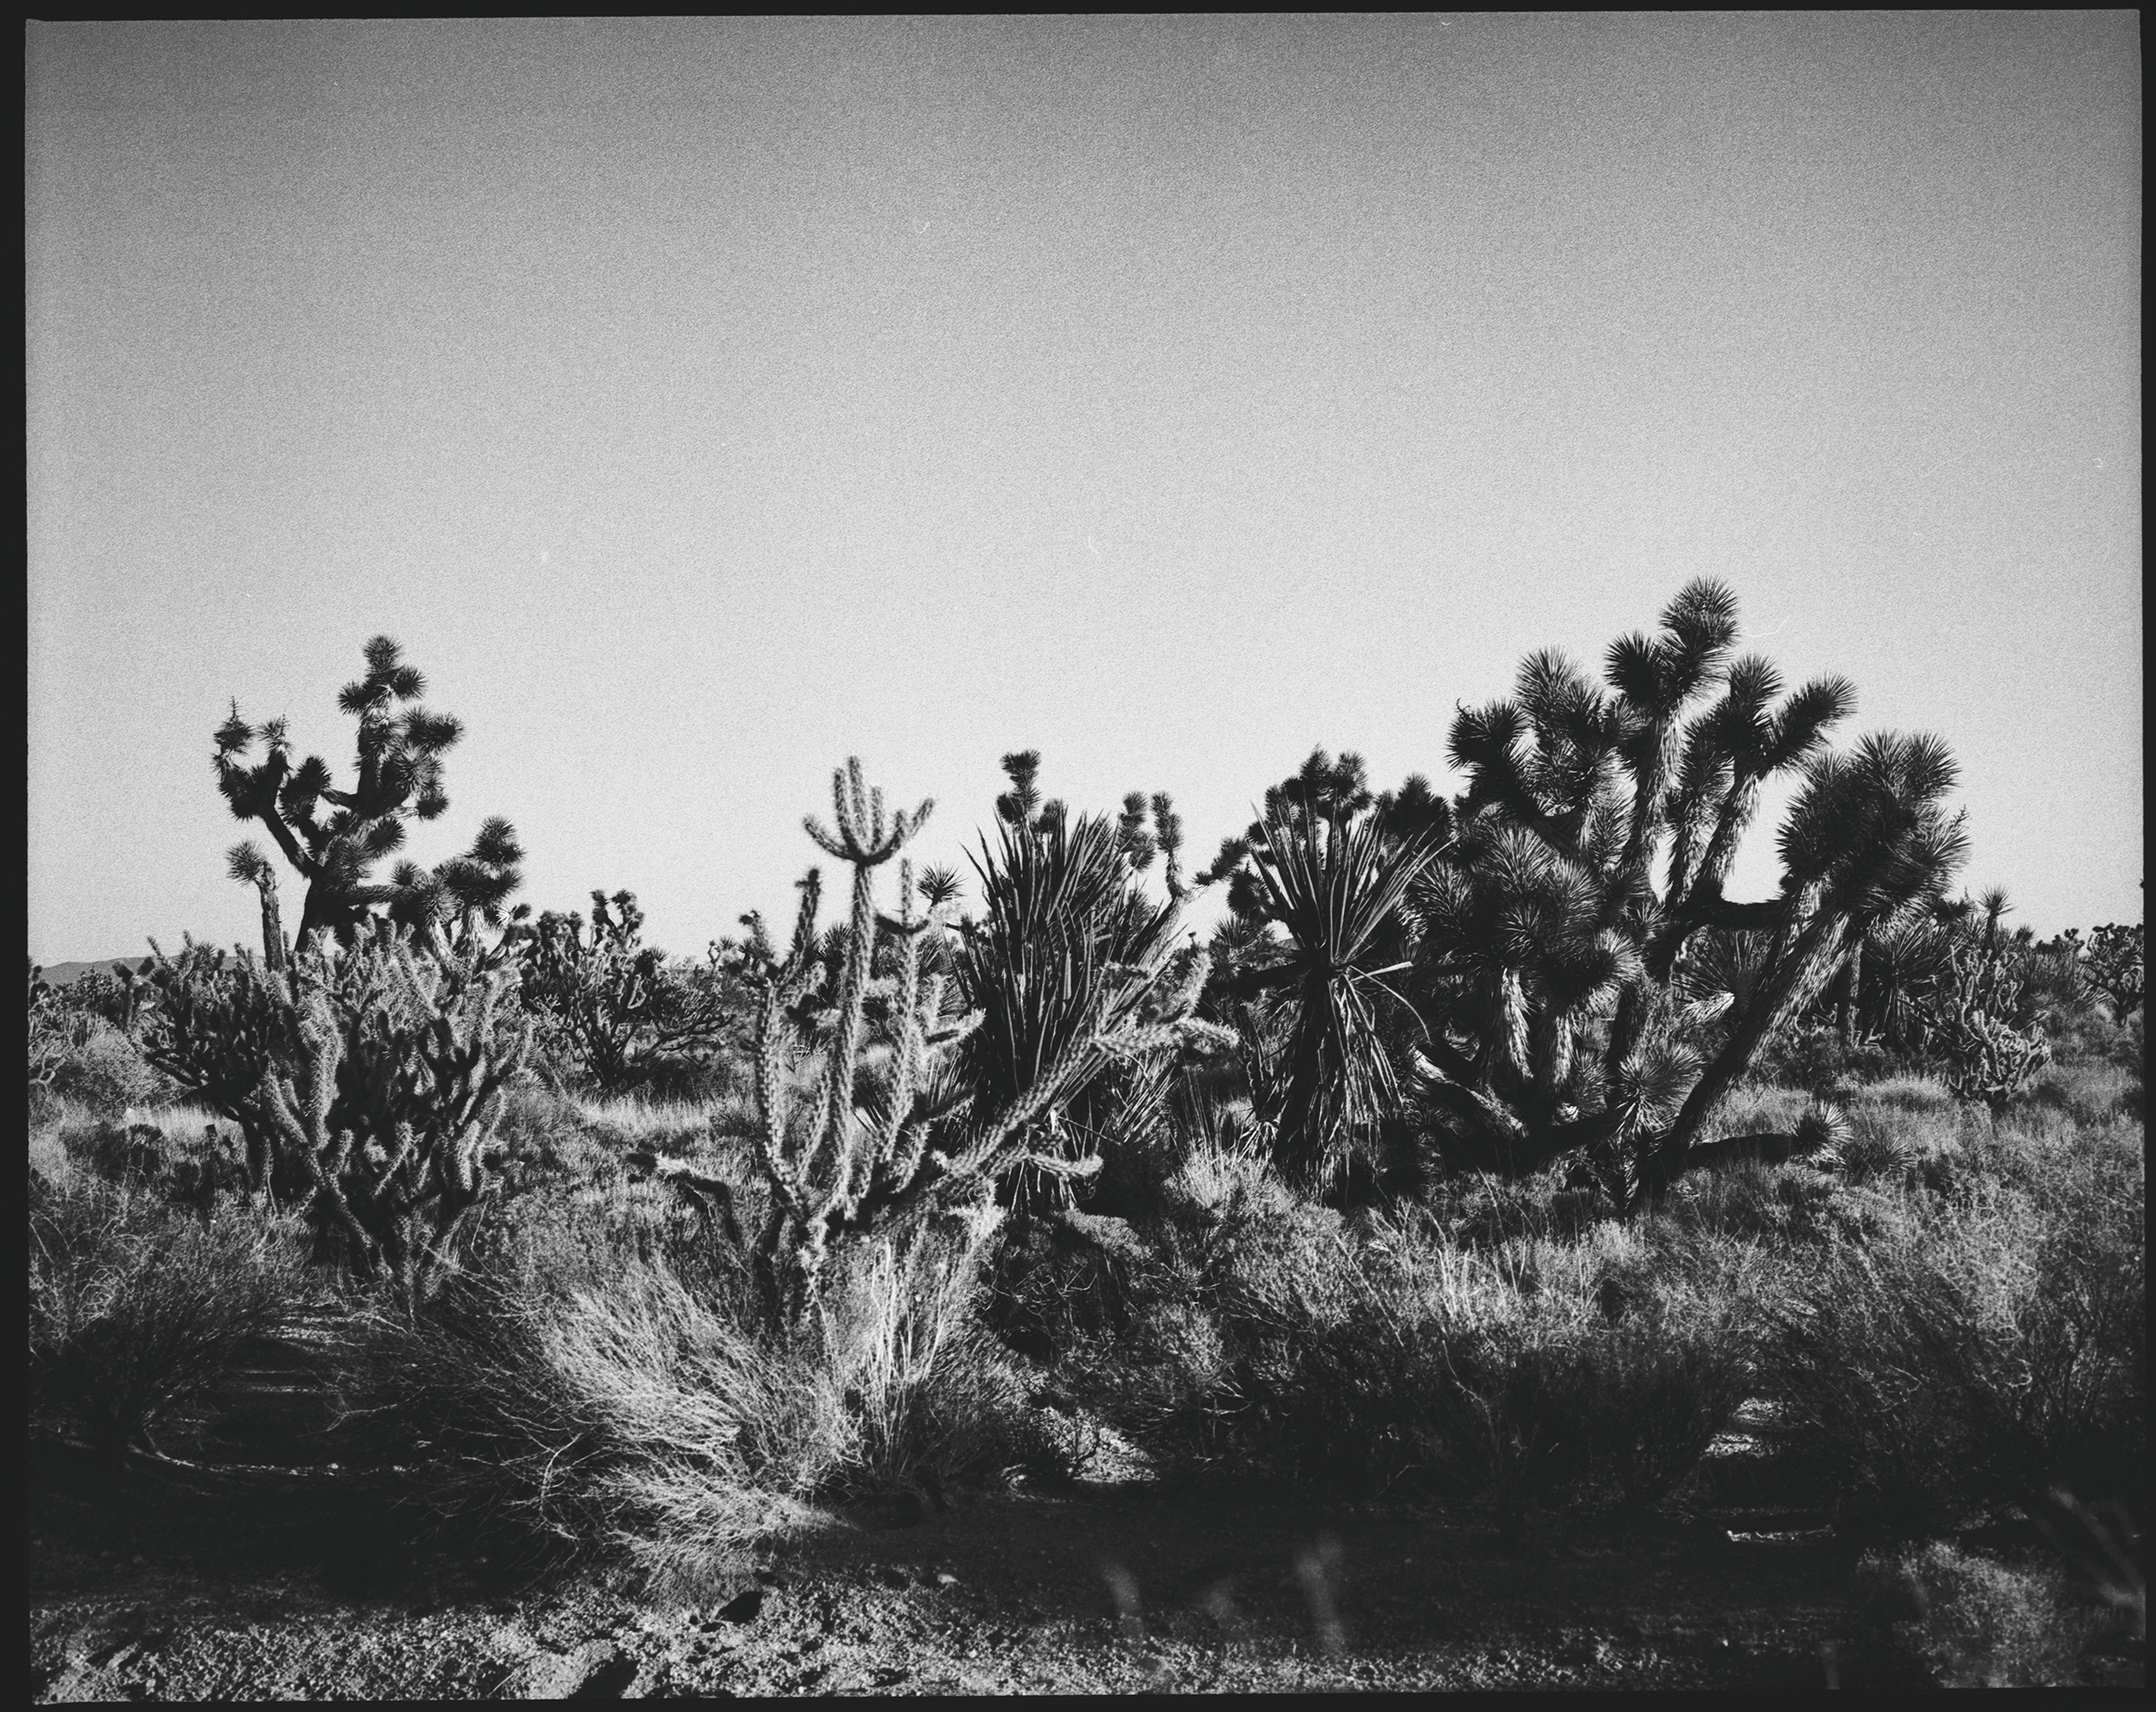 Joshua_Tree_Fine_Art_Landscape_Photography_Julien_Balmer.jpg